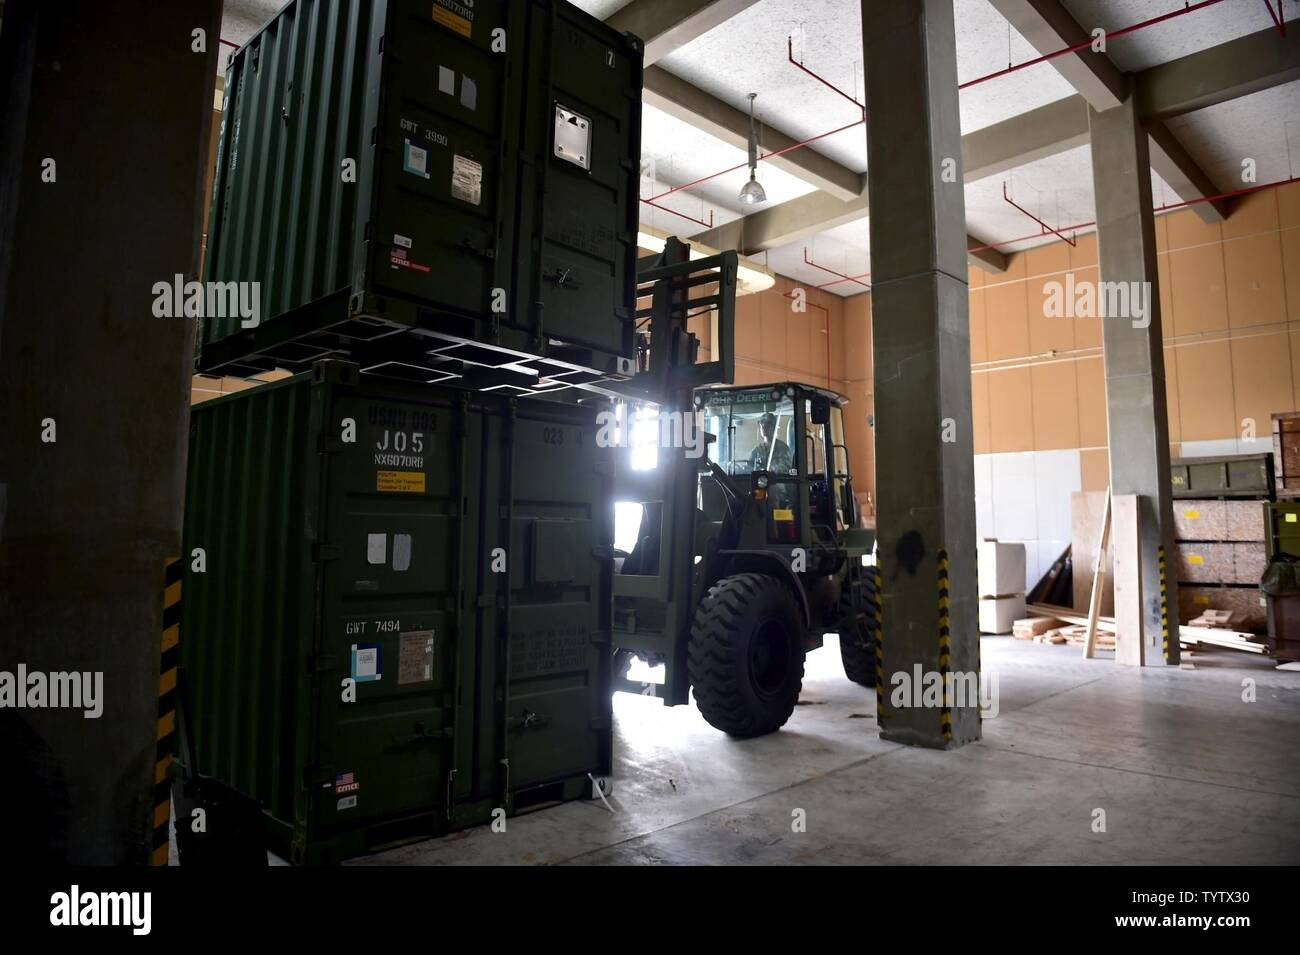 OKINAWA, Japan (Nov. 29, 2016) Seaman Miranda Roudabush, assigned to Naval Mobile Construction Battalion (NMCB) 5, drives a forklift while moving containers inside of a warehouse on Camp Shields during an embark exercise. The exercise tests the commands ability to mobilize within 48 hours to react to different types of contingency operations around the world. NMCB 5 is the forward deployed Western Pacific NMCB ready to support Major Combat Operations, Humanitarian Assistance and Disaster Relief operations, and to provide general engineering and civil support to Navy, Marine Corps and joint ope - Stock Image